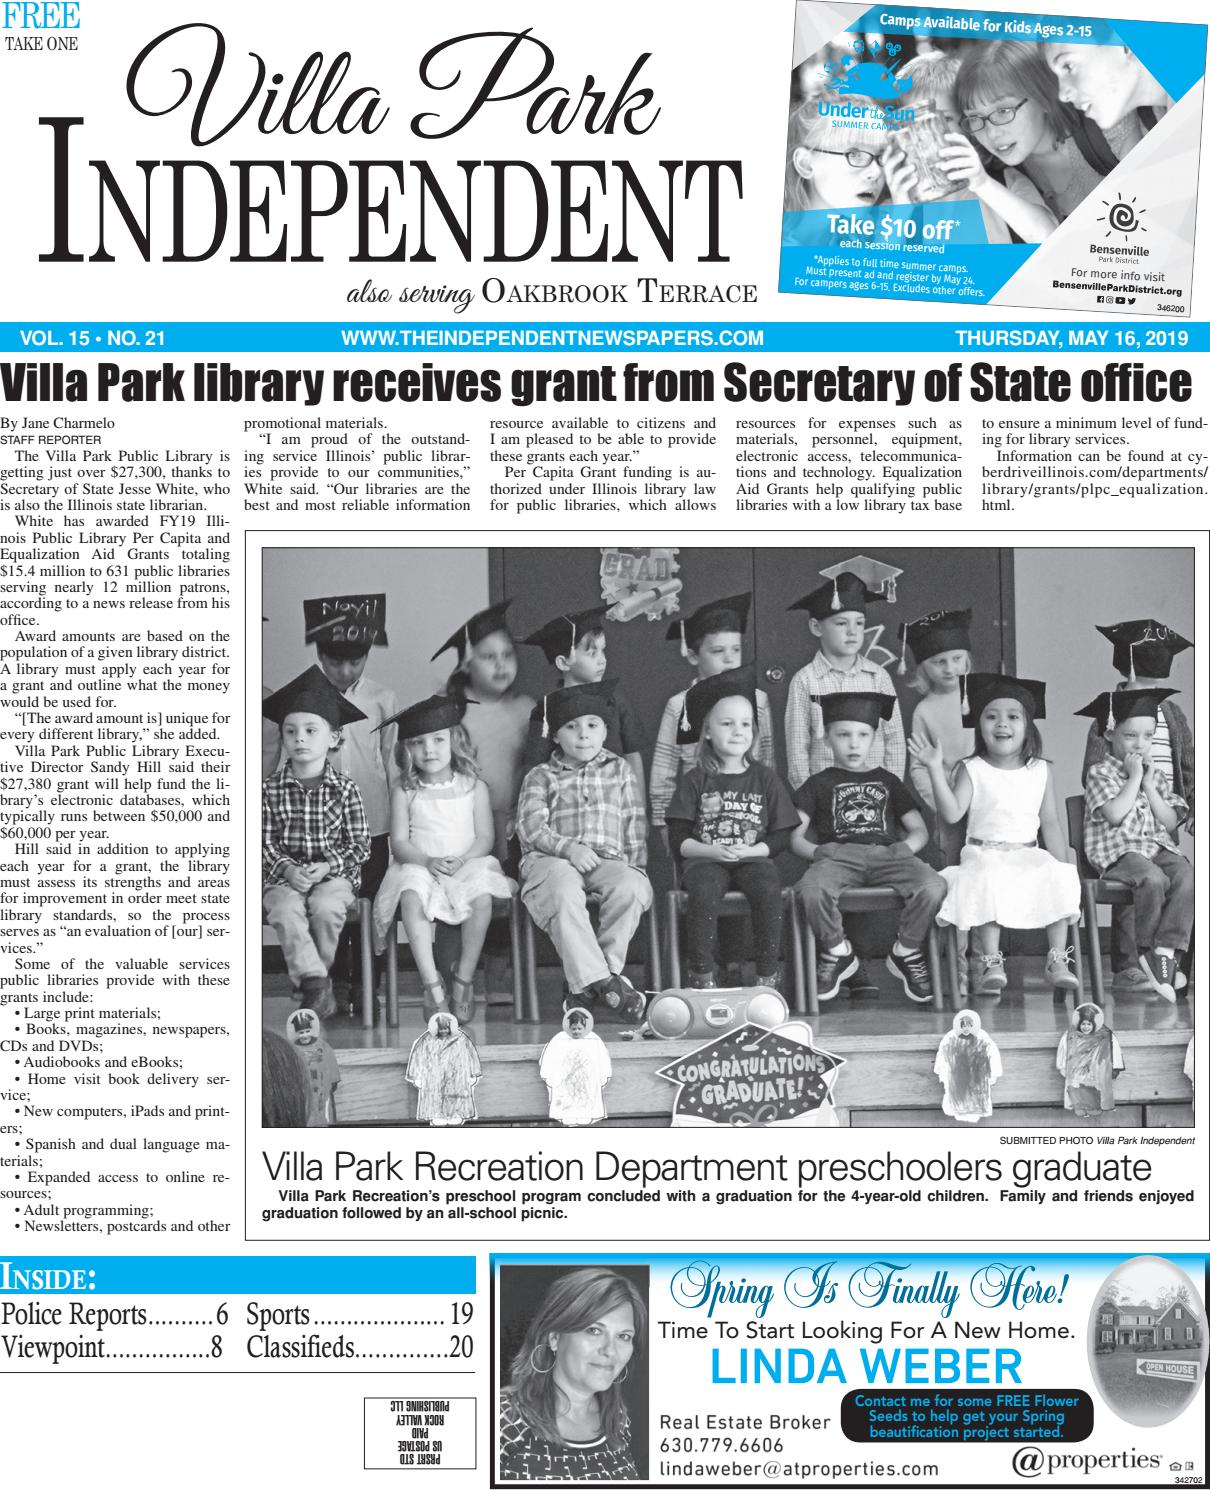 VI51619 by Southern Lakes Newspapers / Rock Valley